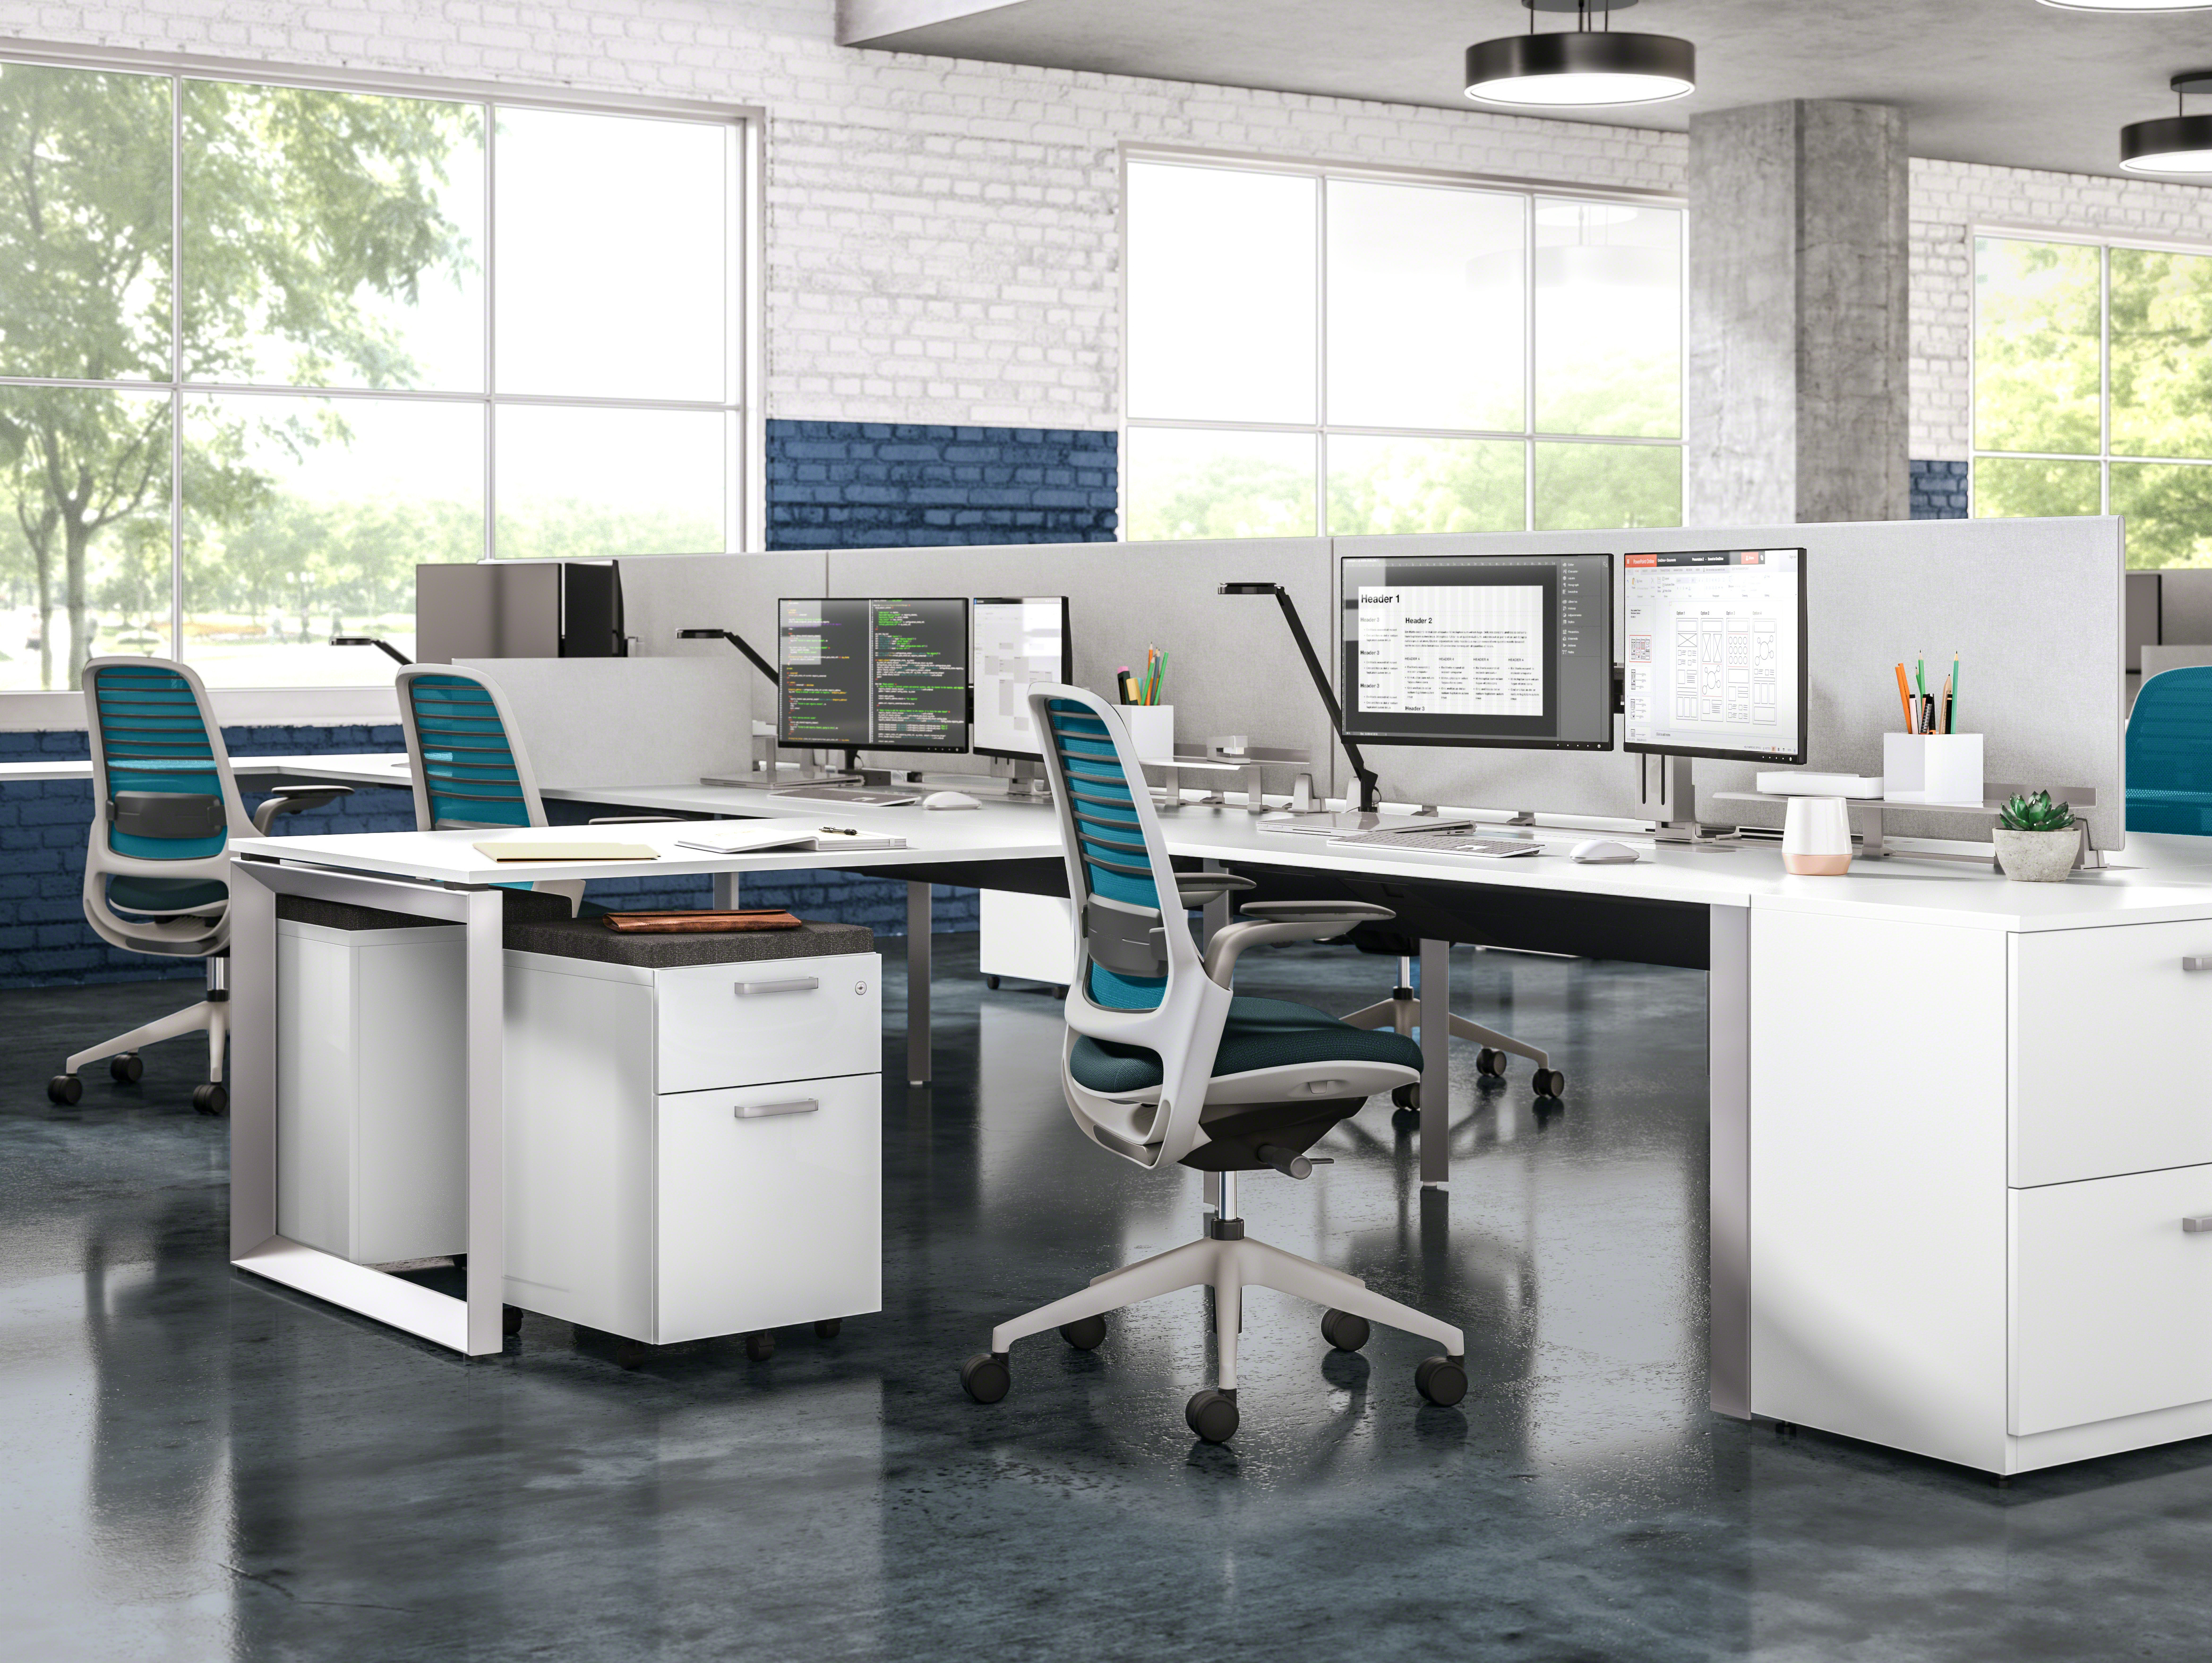 Steelcase Series 1 fice Chair